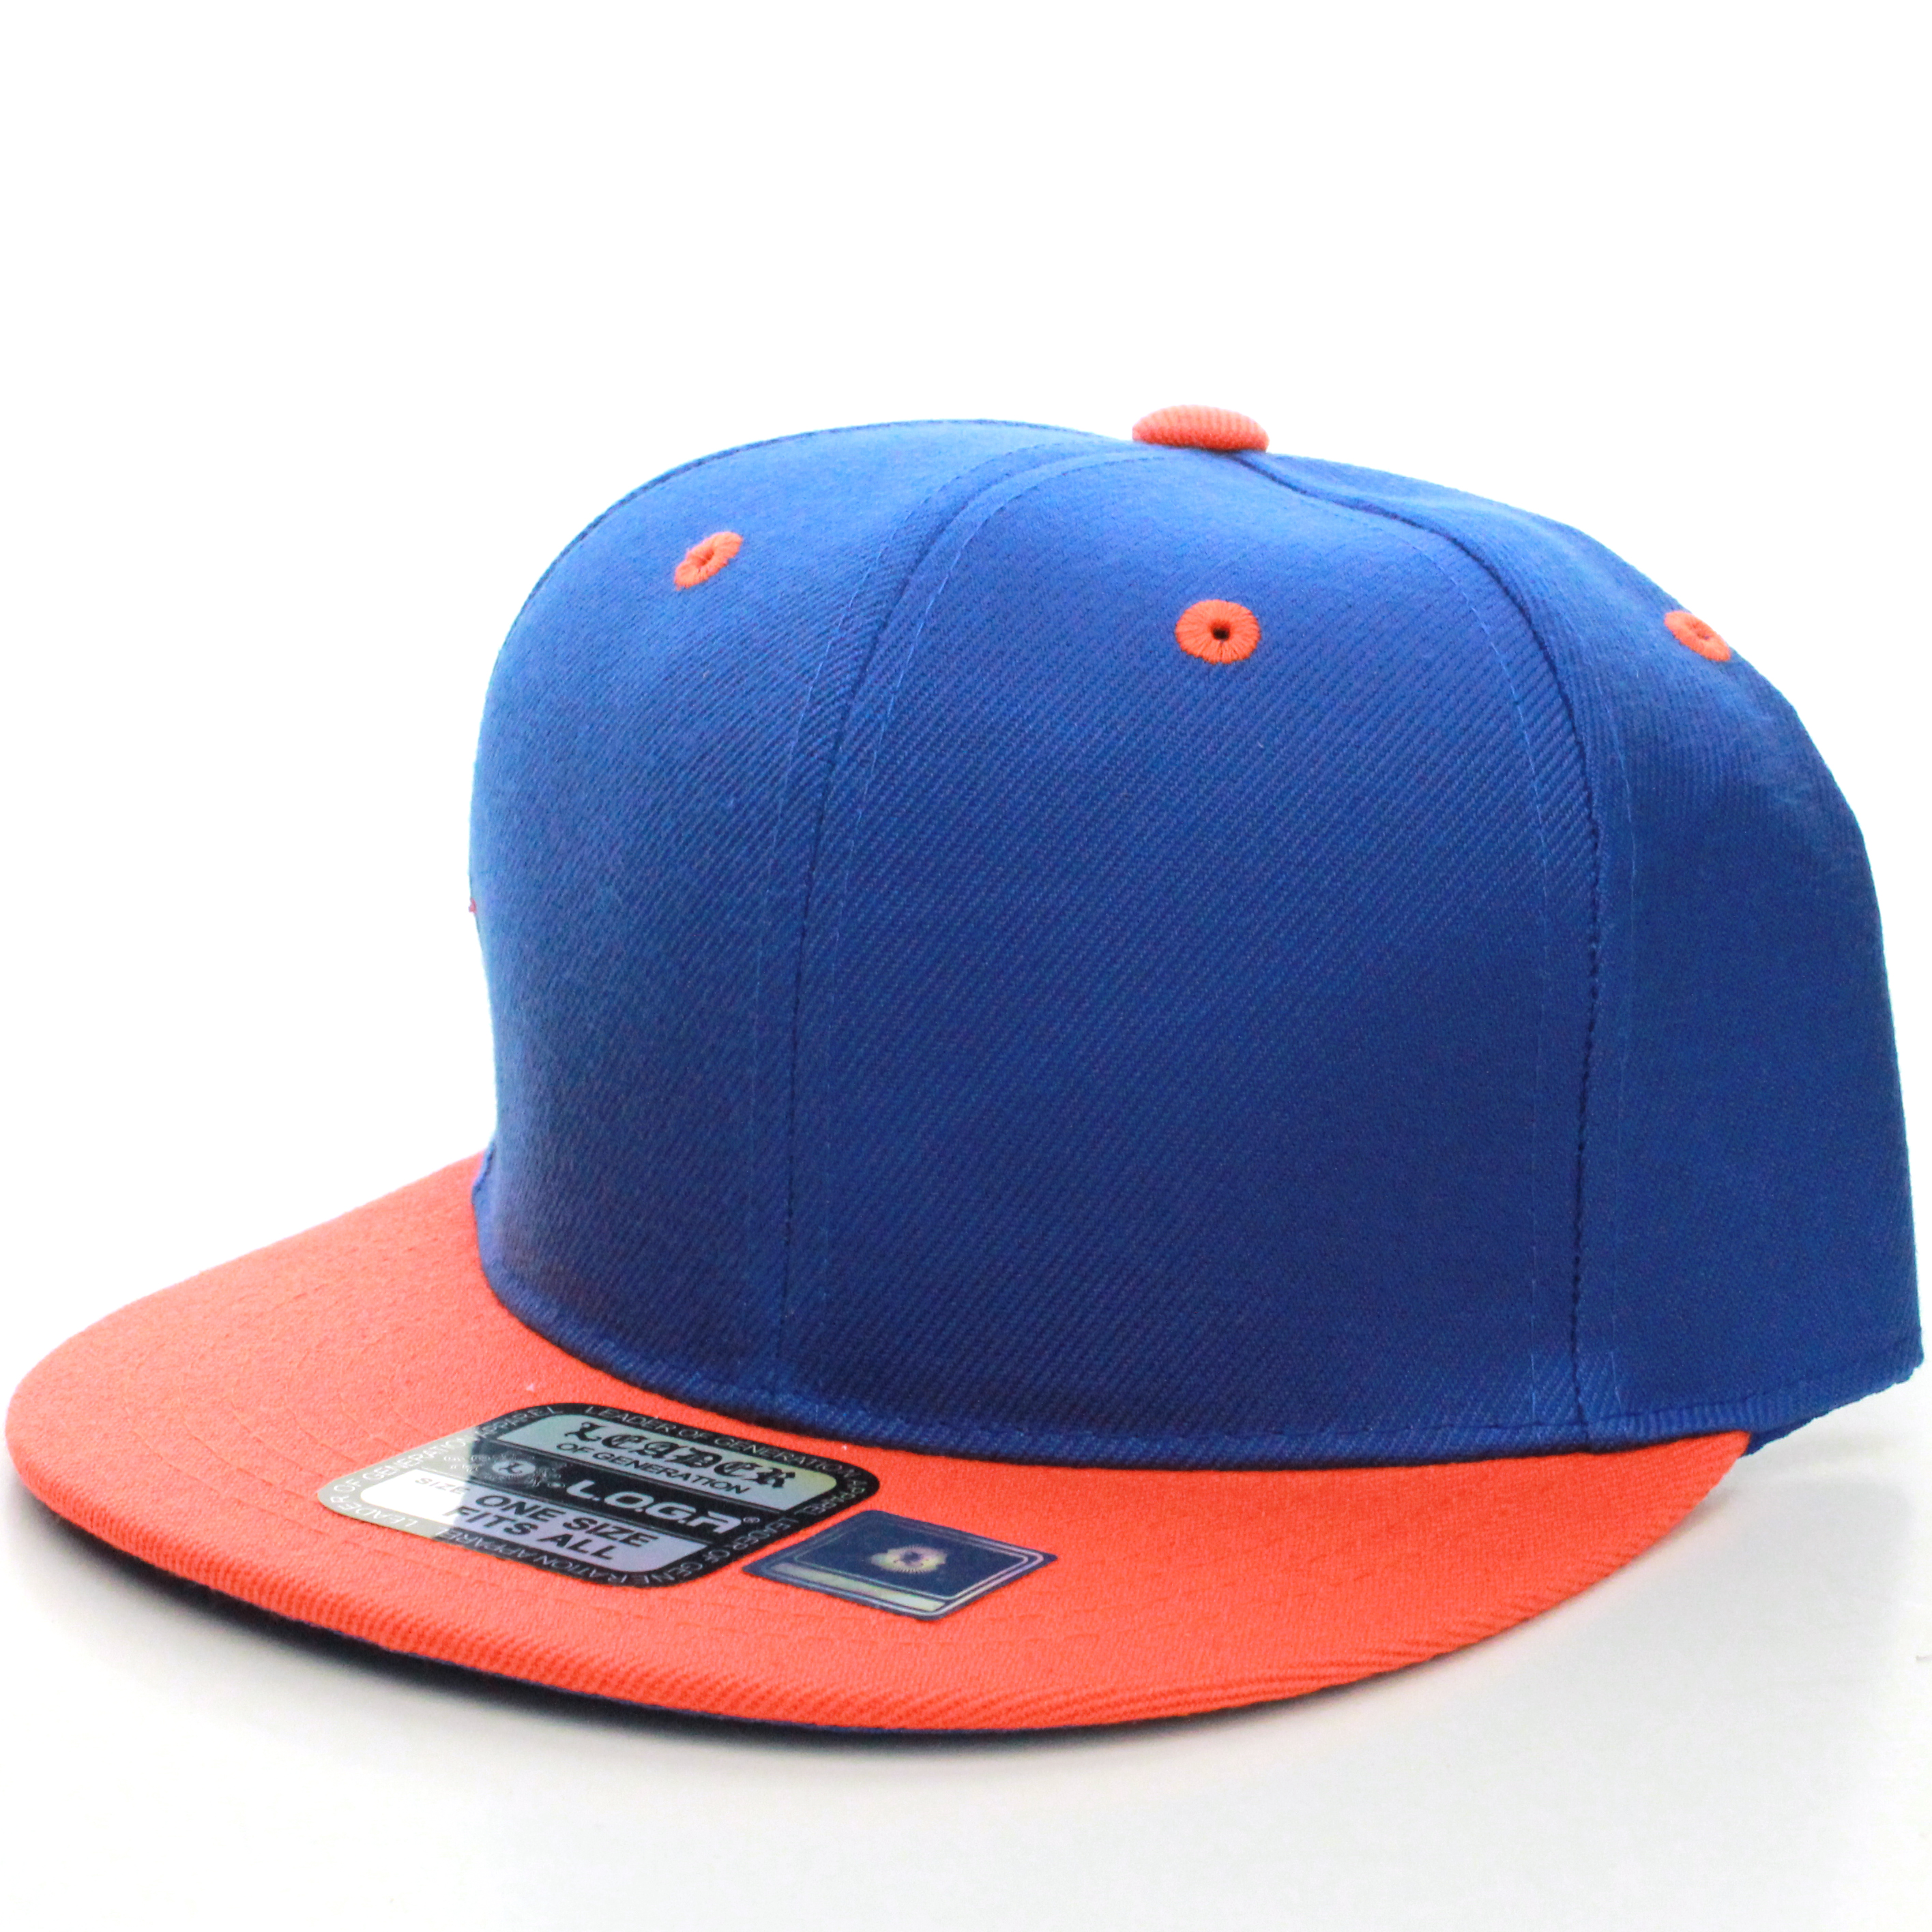 Classic Flat Bill Visor Blank Snapback Hat Cap with Adjustable Snaps